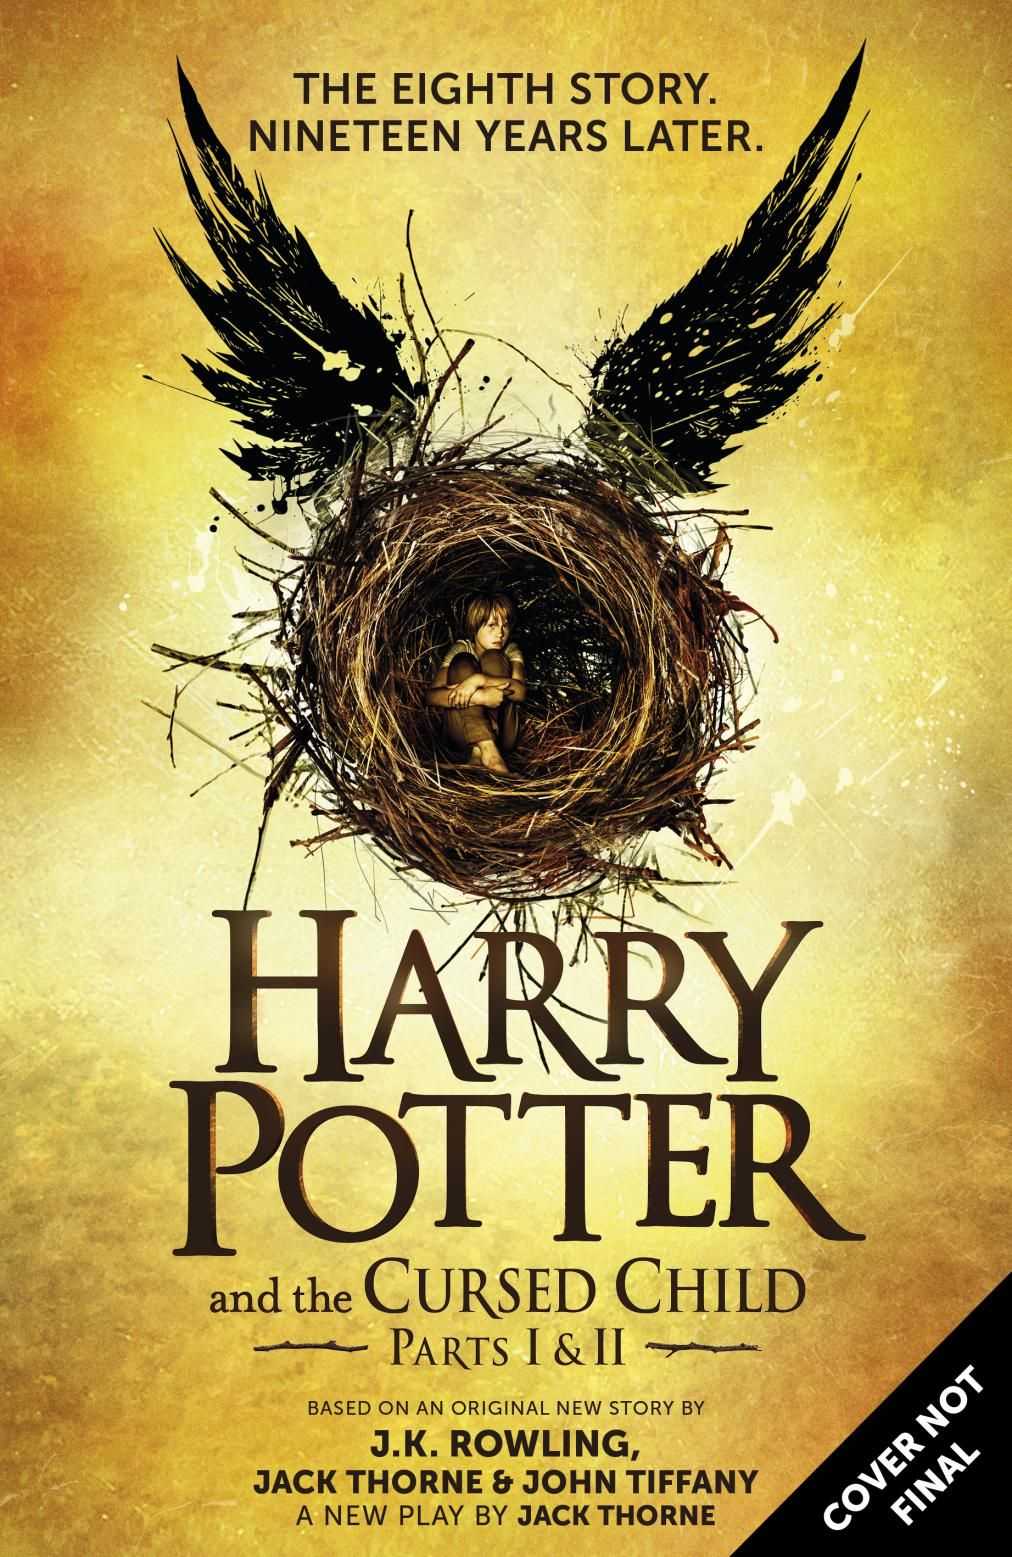 Harry Potter And The Cursed Child To Be Published As border=